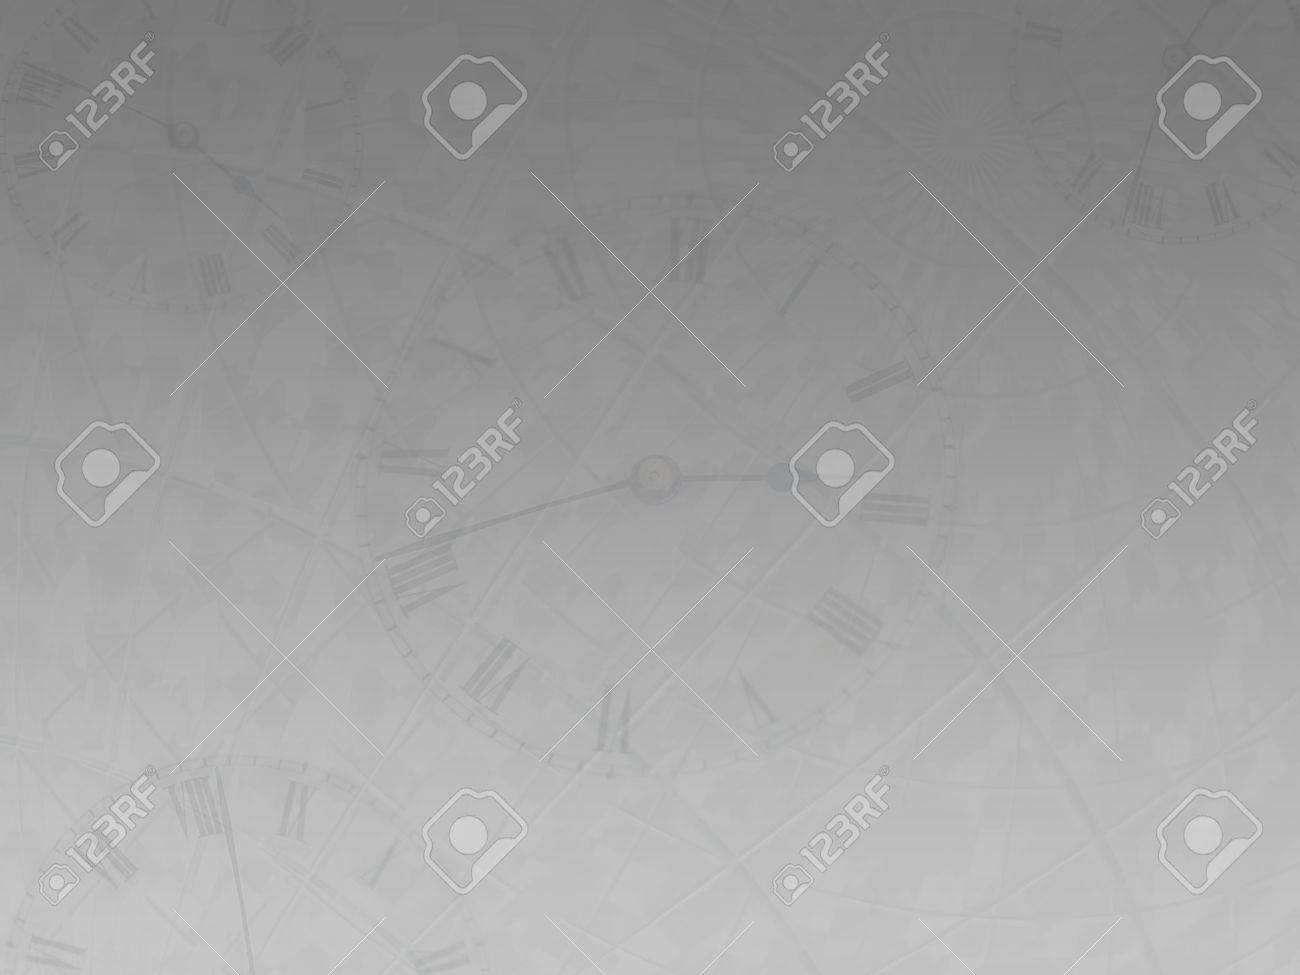 Time background in gray with transparent clocks Stock Photo - 304689